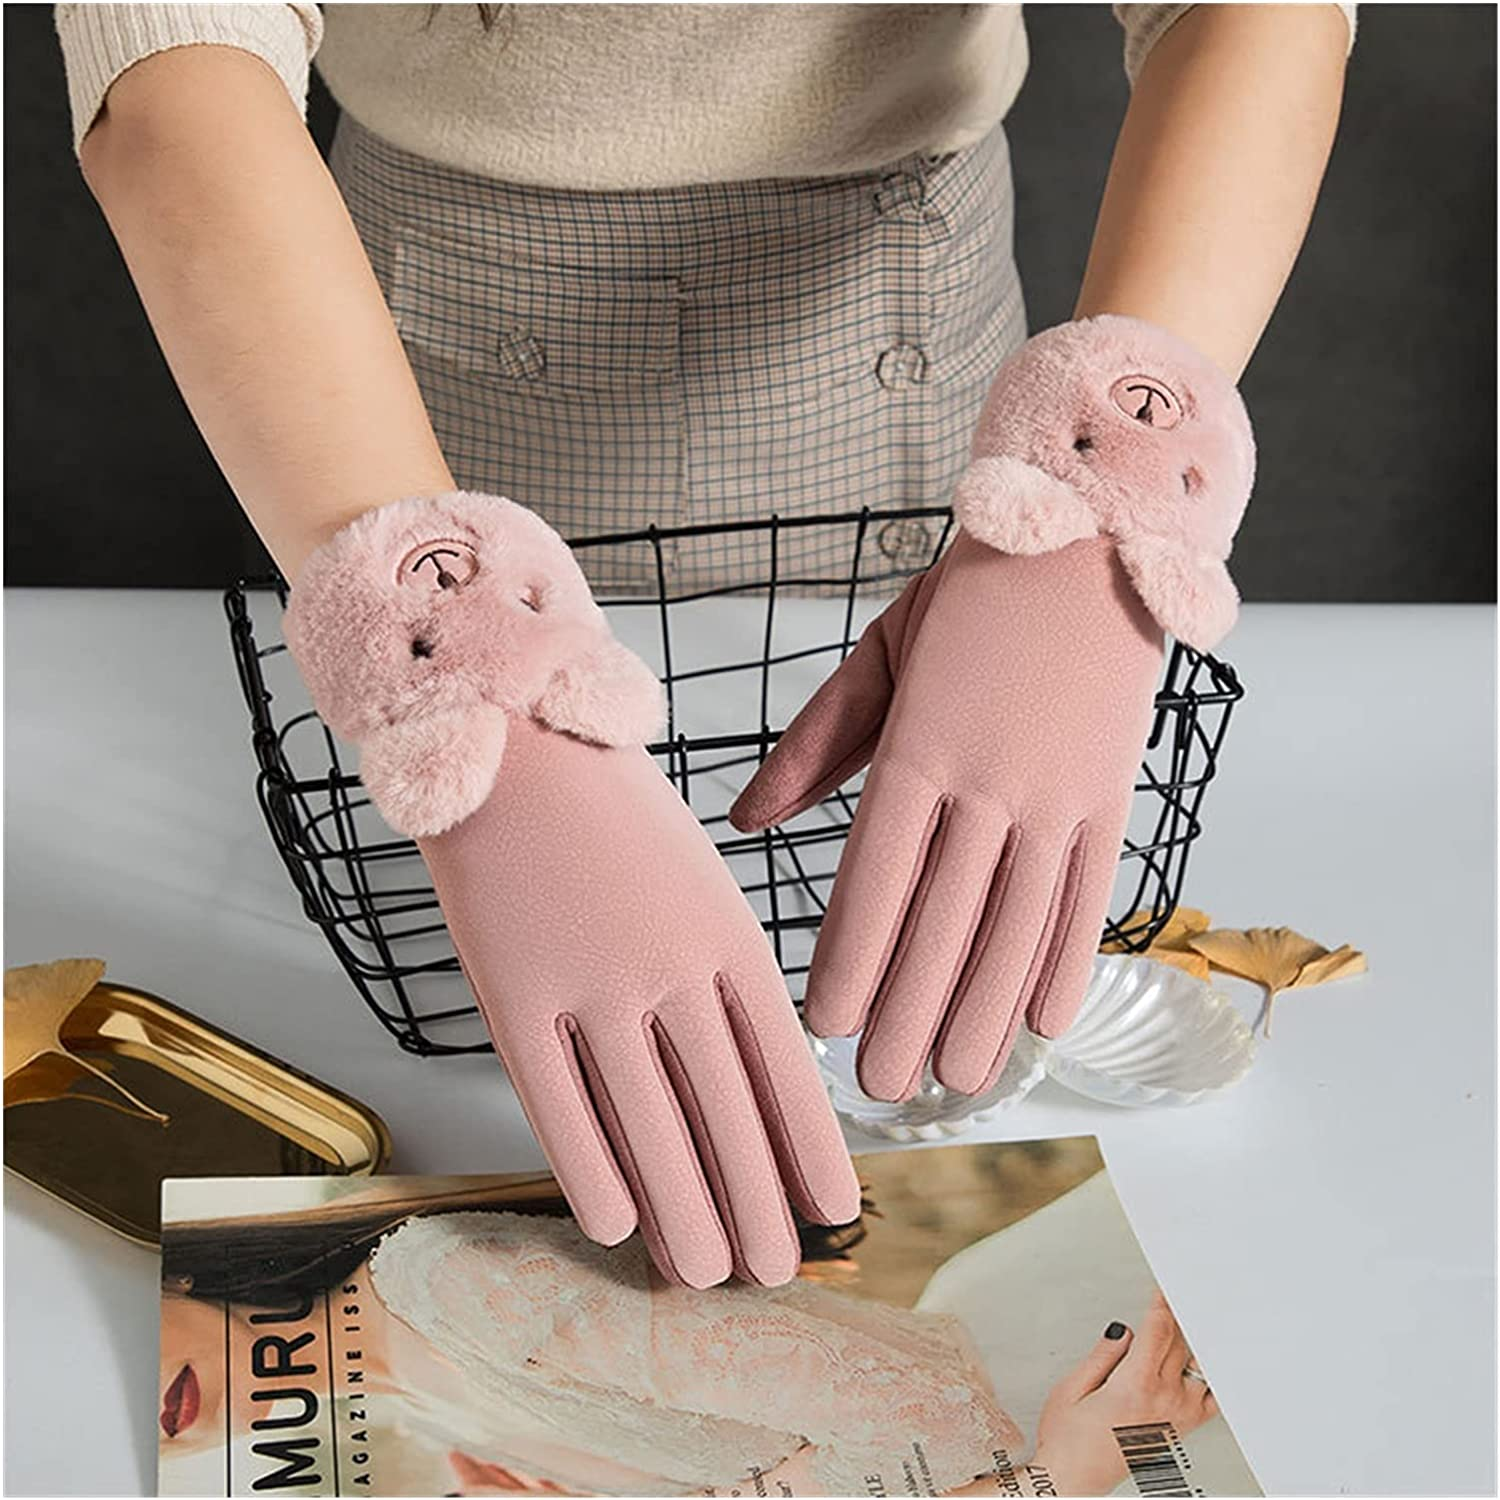 Lace Gloves New Winter Female Lace Warm Cashmere Three Ribs Cute Bear Mittens Double Thick Plush Wrist Women Touch Screen Driving (Color : Bear Bean Pink, Gloves Size : One Size)